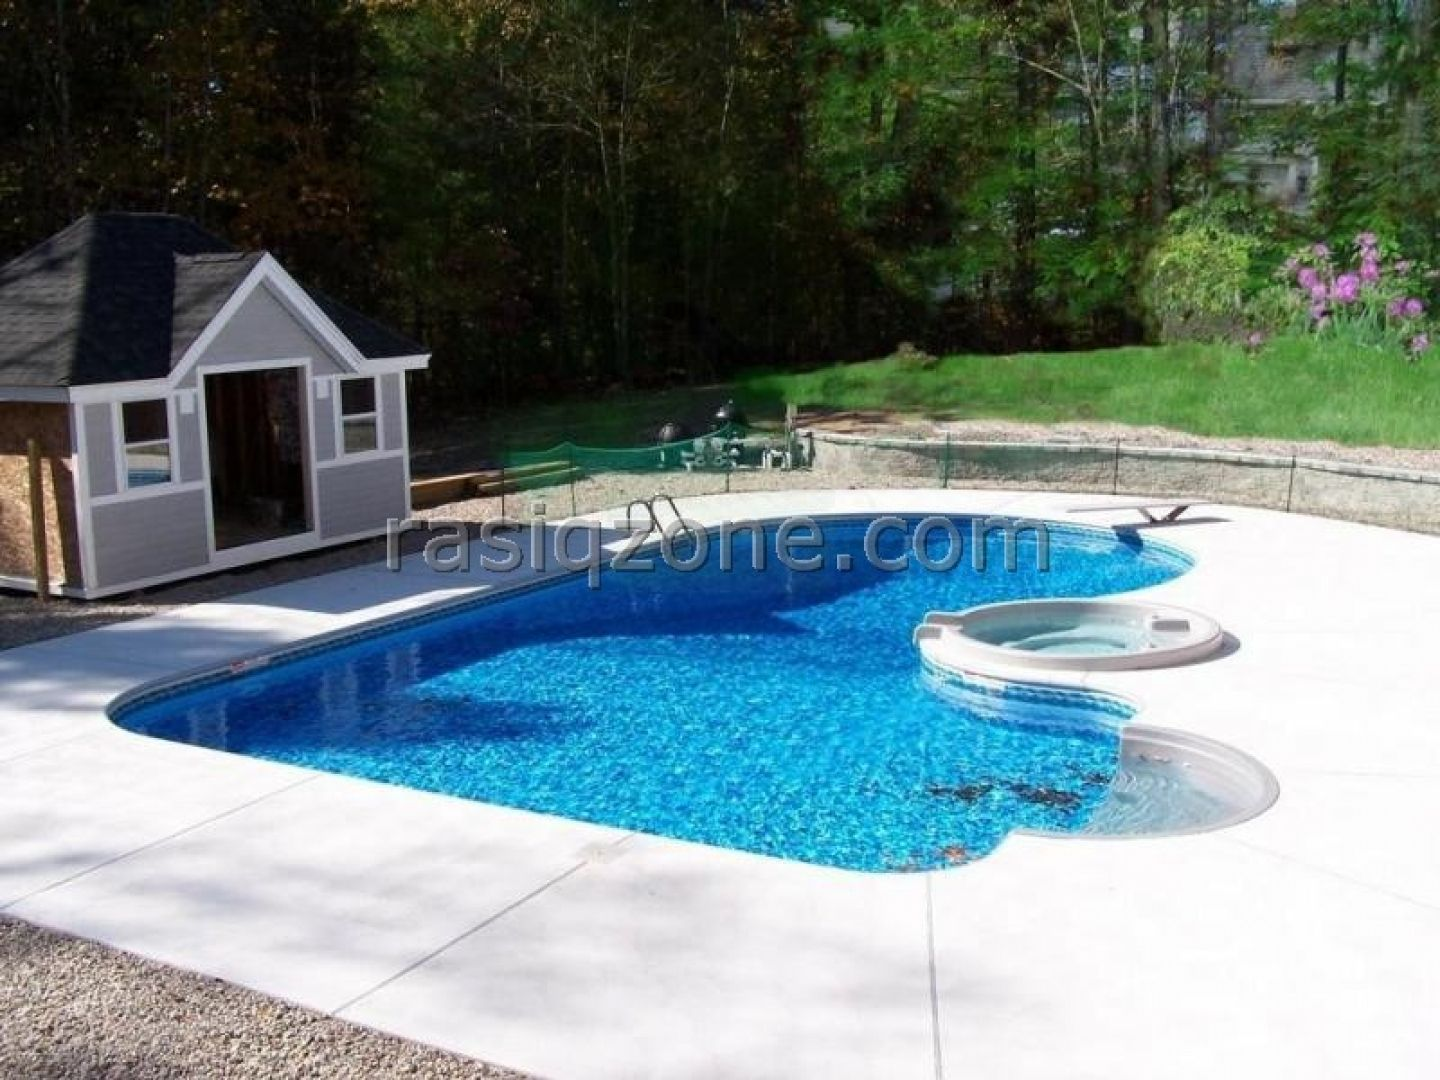 Inground pools kids will love pool designs backyard - Swimming pools for small backyards ...